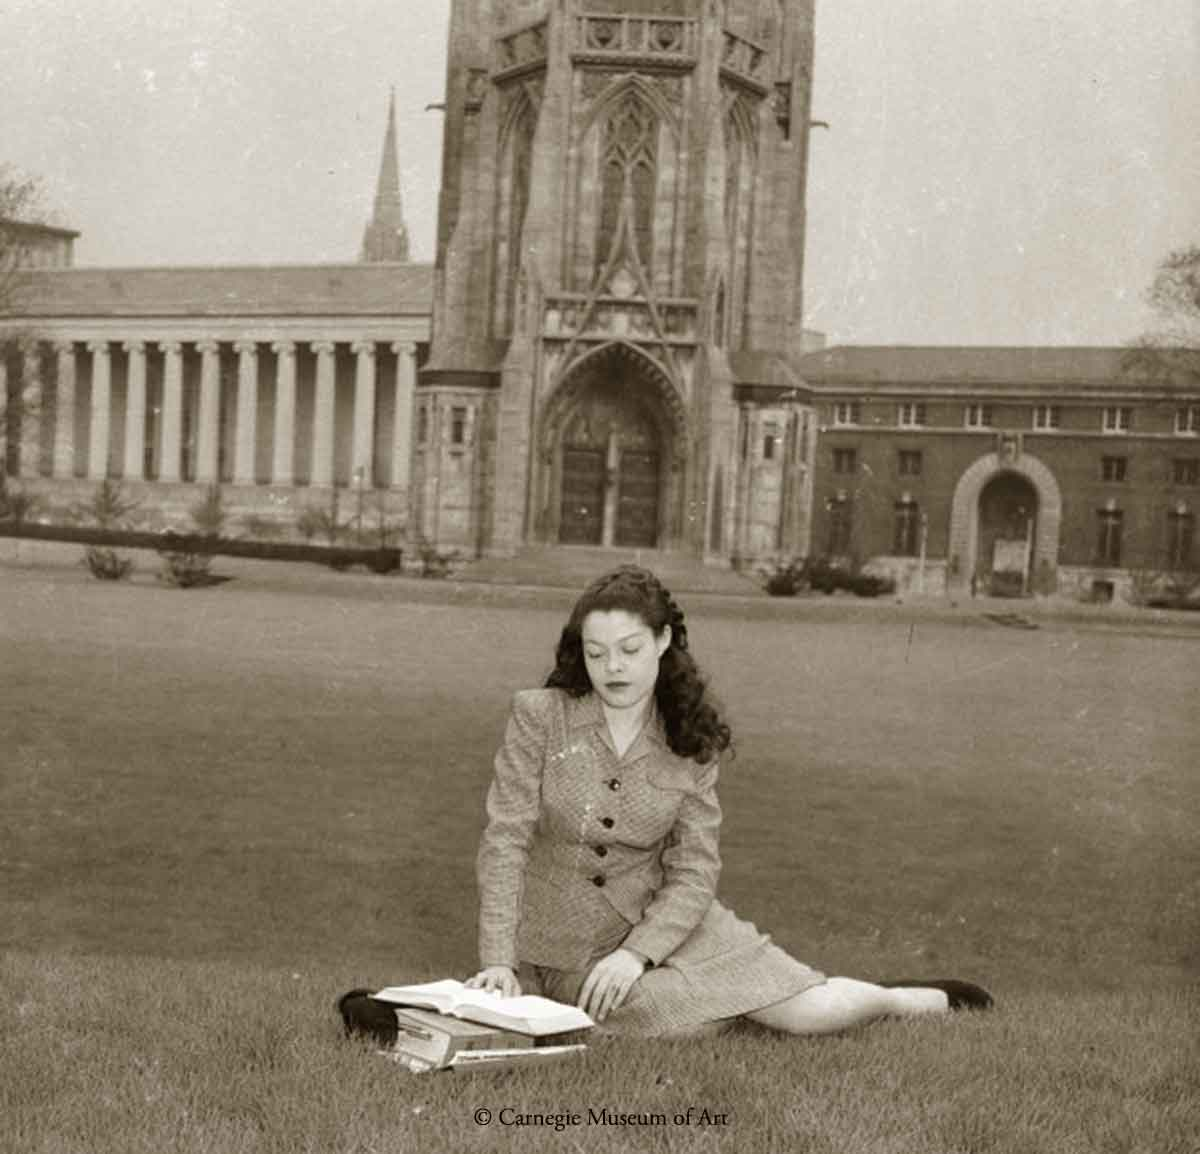 1940s Black Fashion - Teenie Harris - University-of-Pittsburgh-1945